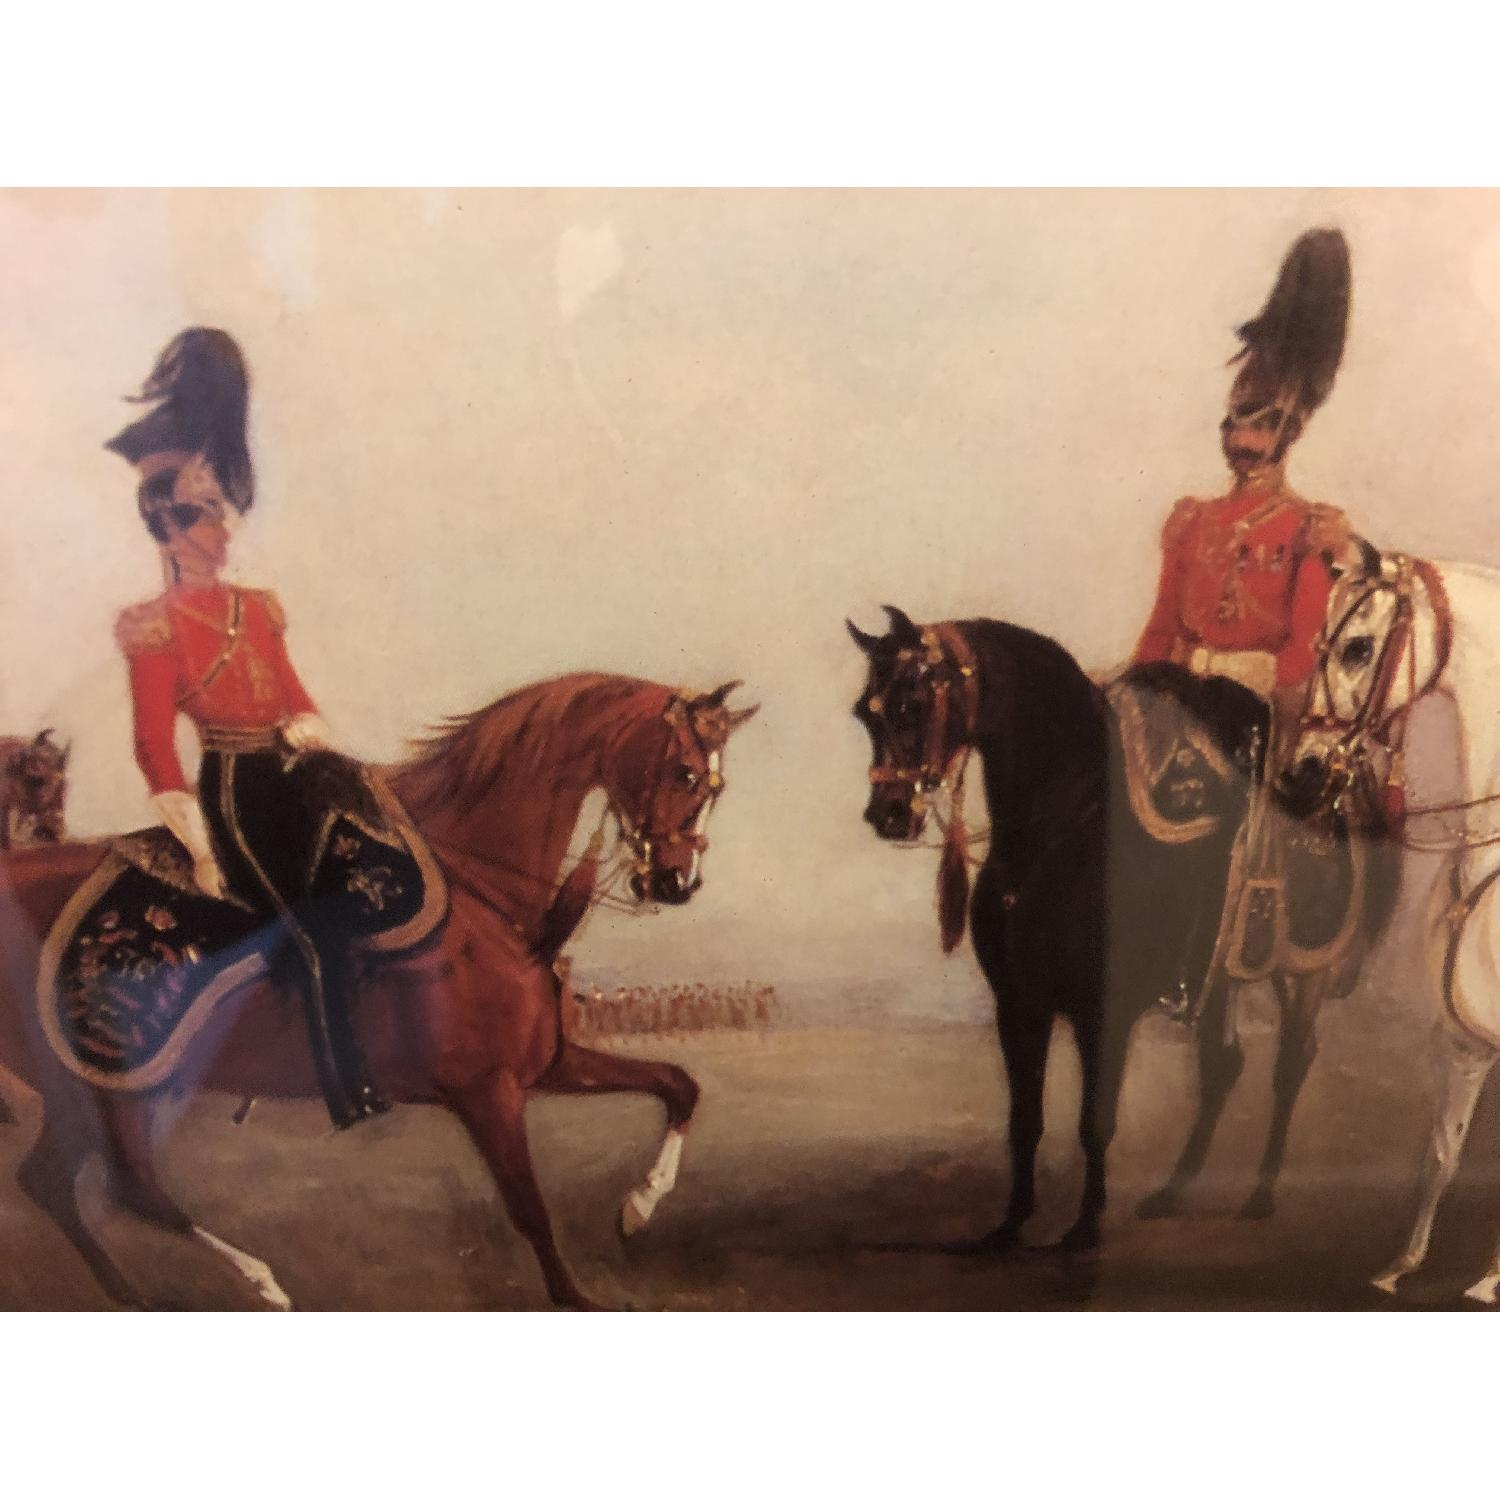 Bombay Co. Framed Print of Cavalry-3